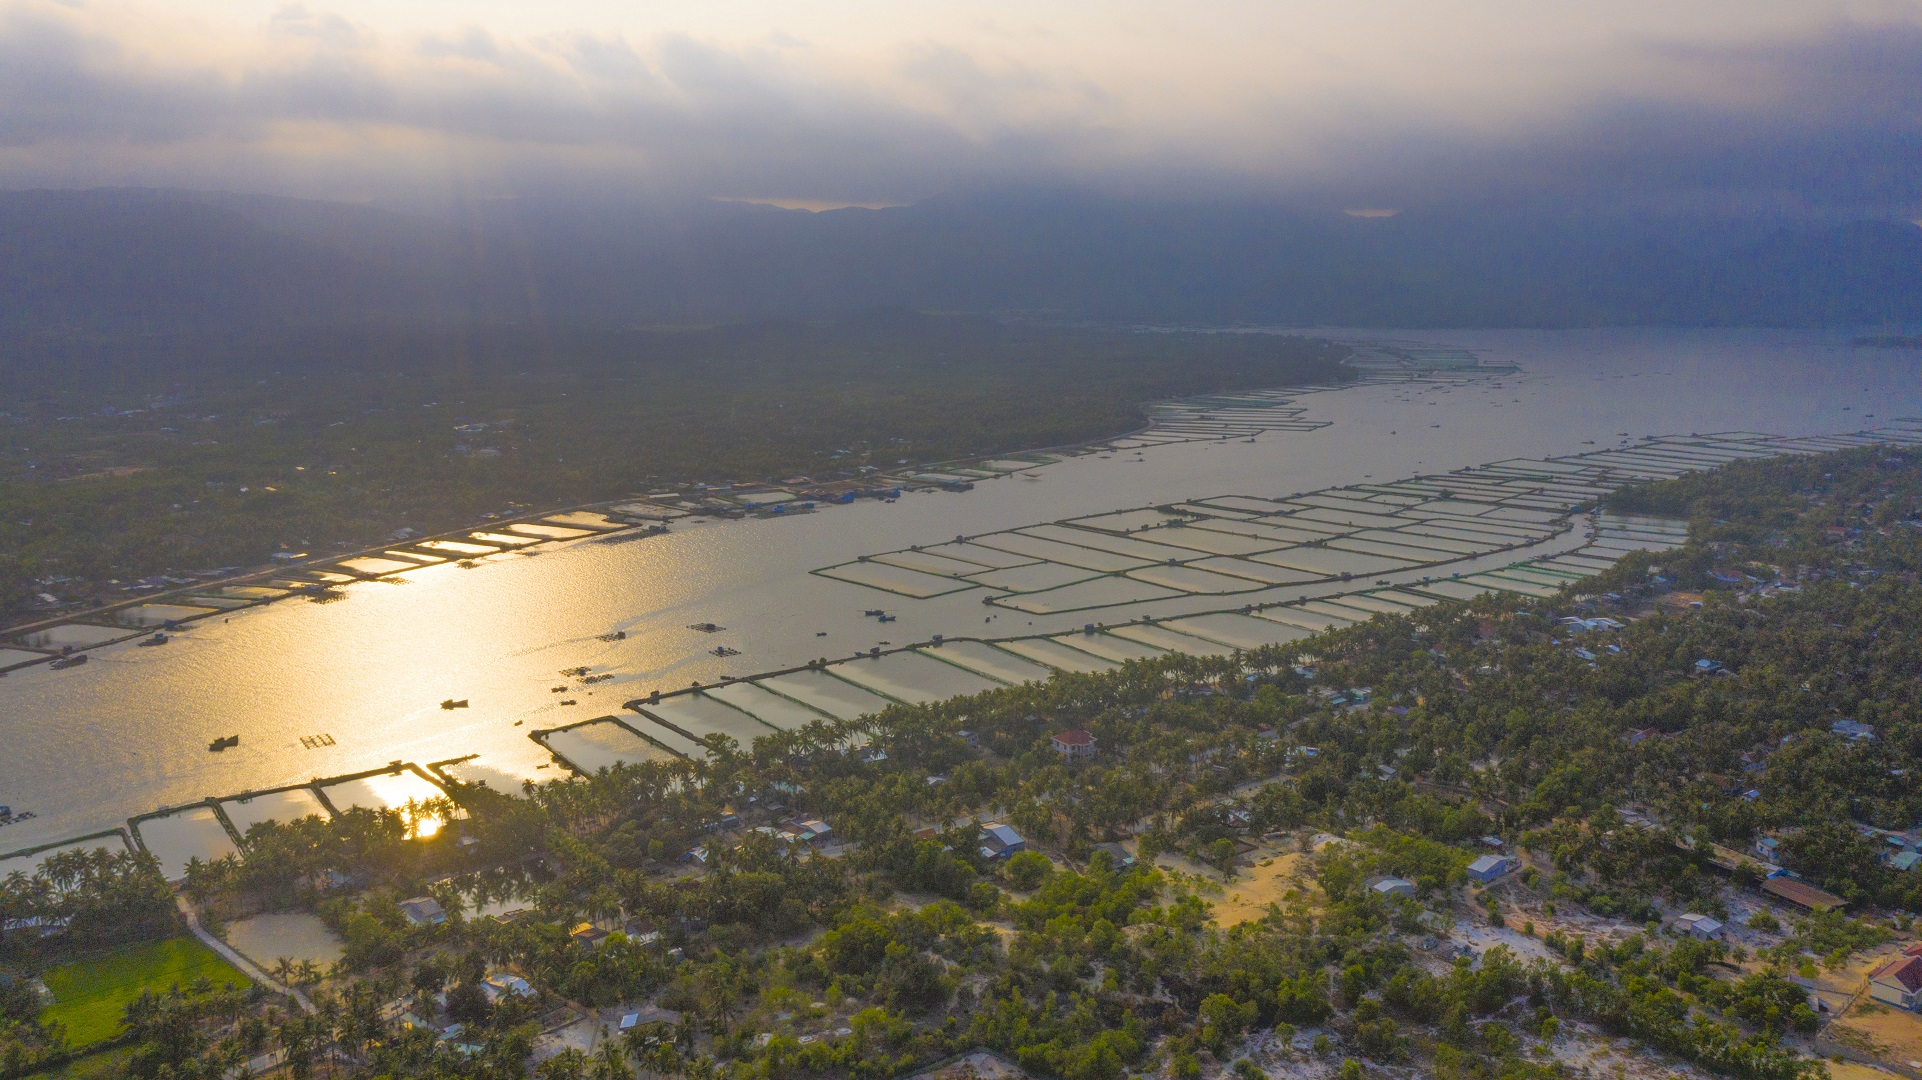 An aerial photo captures aquatic farms in the sunset in the central province of Phu Yen's Song Cau Town. Photo: Quang Dinh / Tuoi Tre News